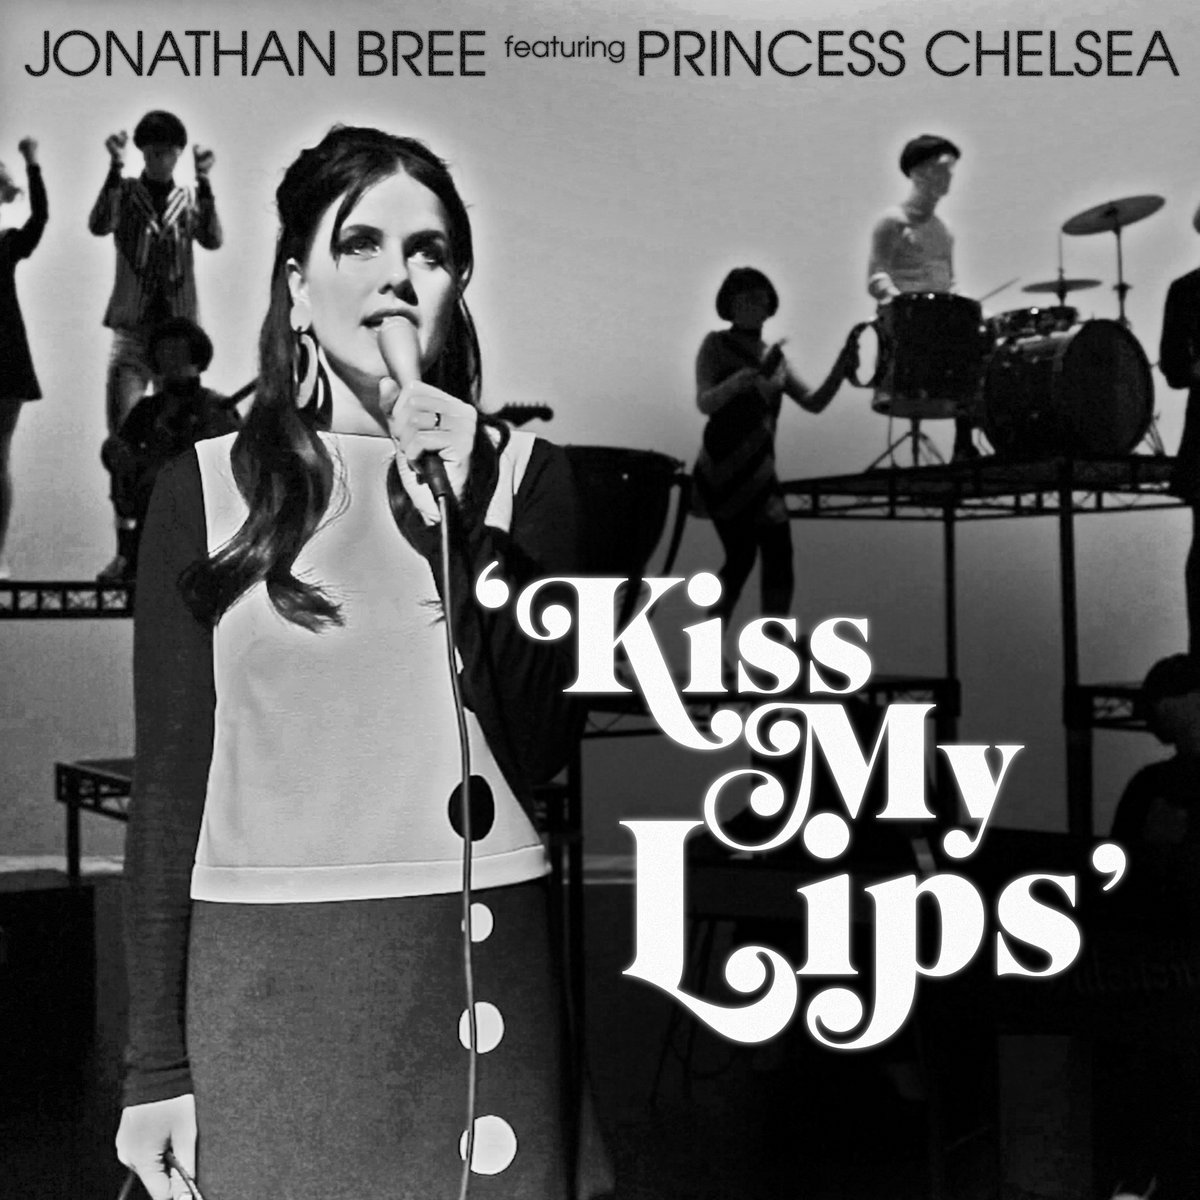 Kiss My Lips ft. Princess Chelsea